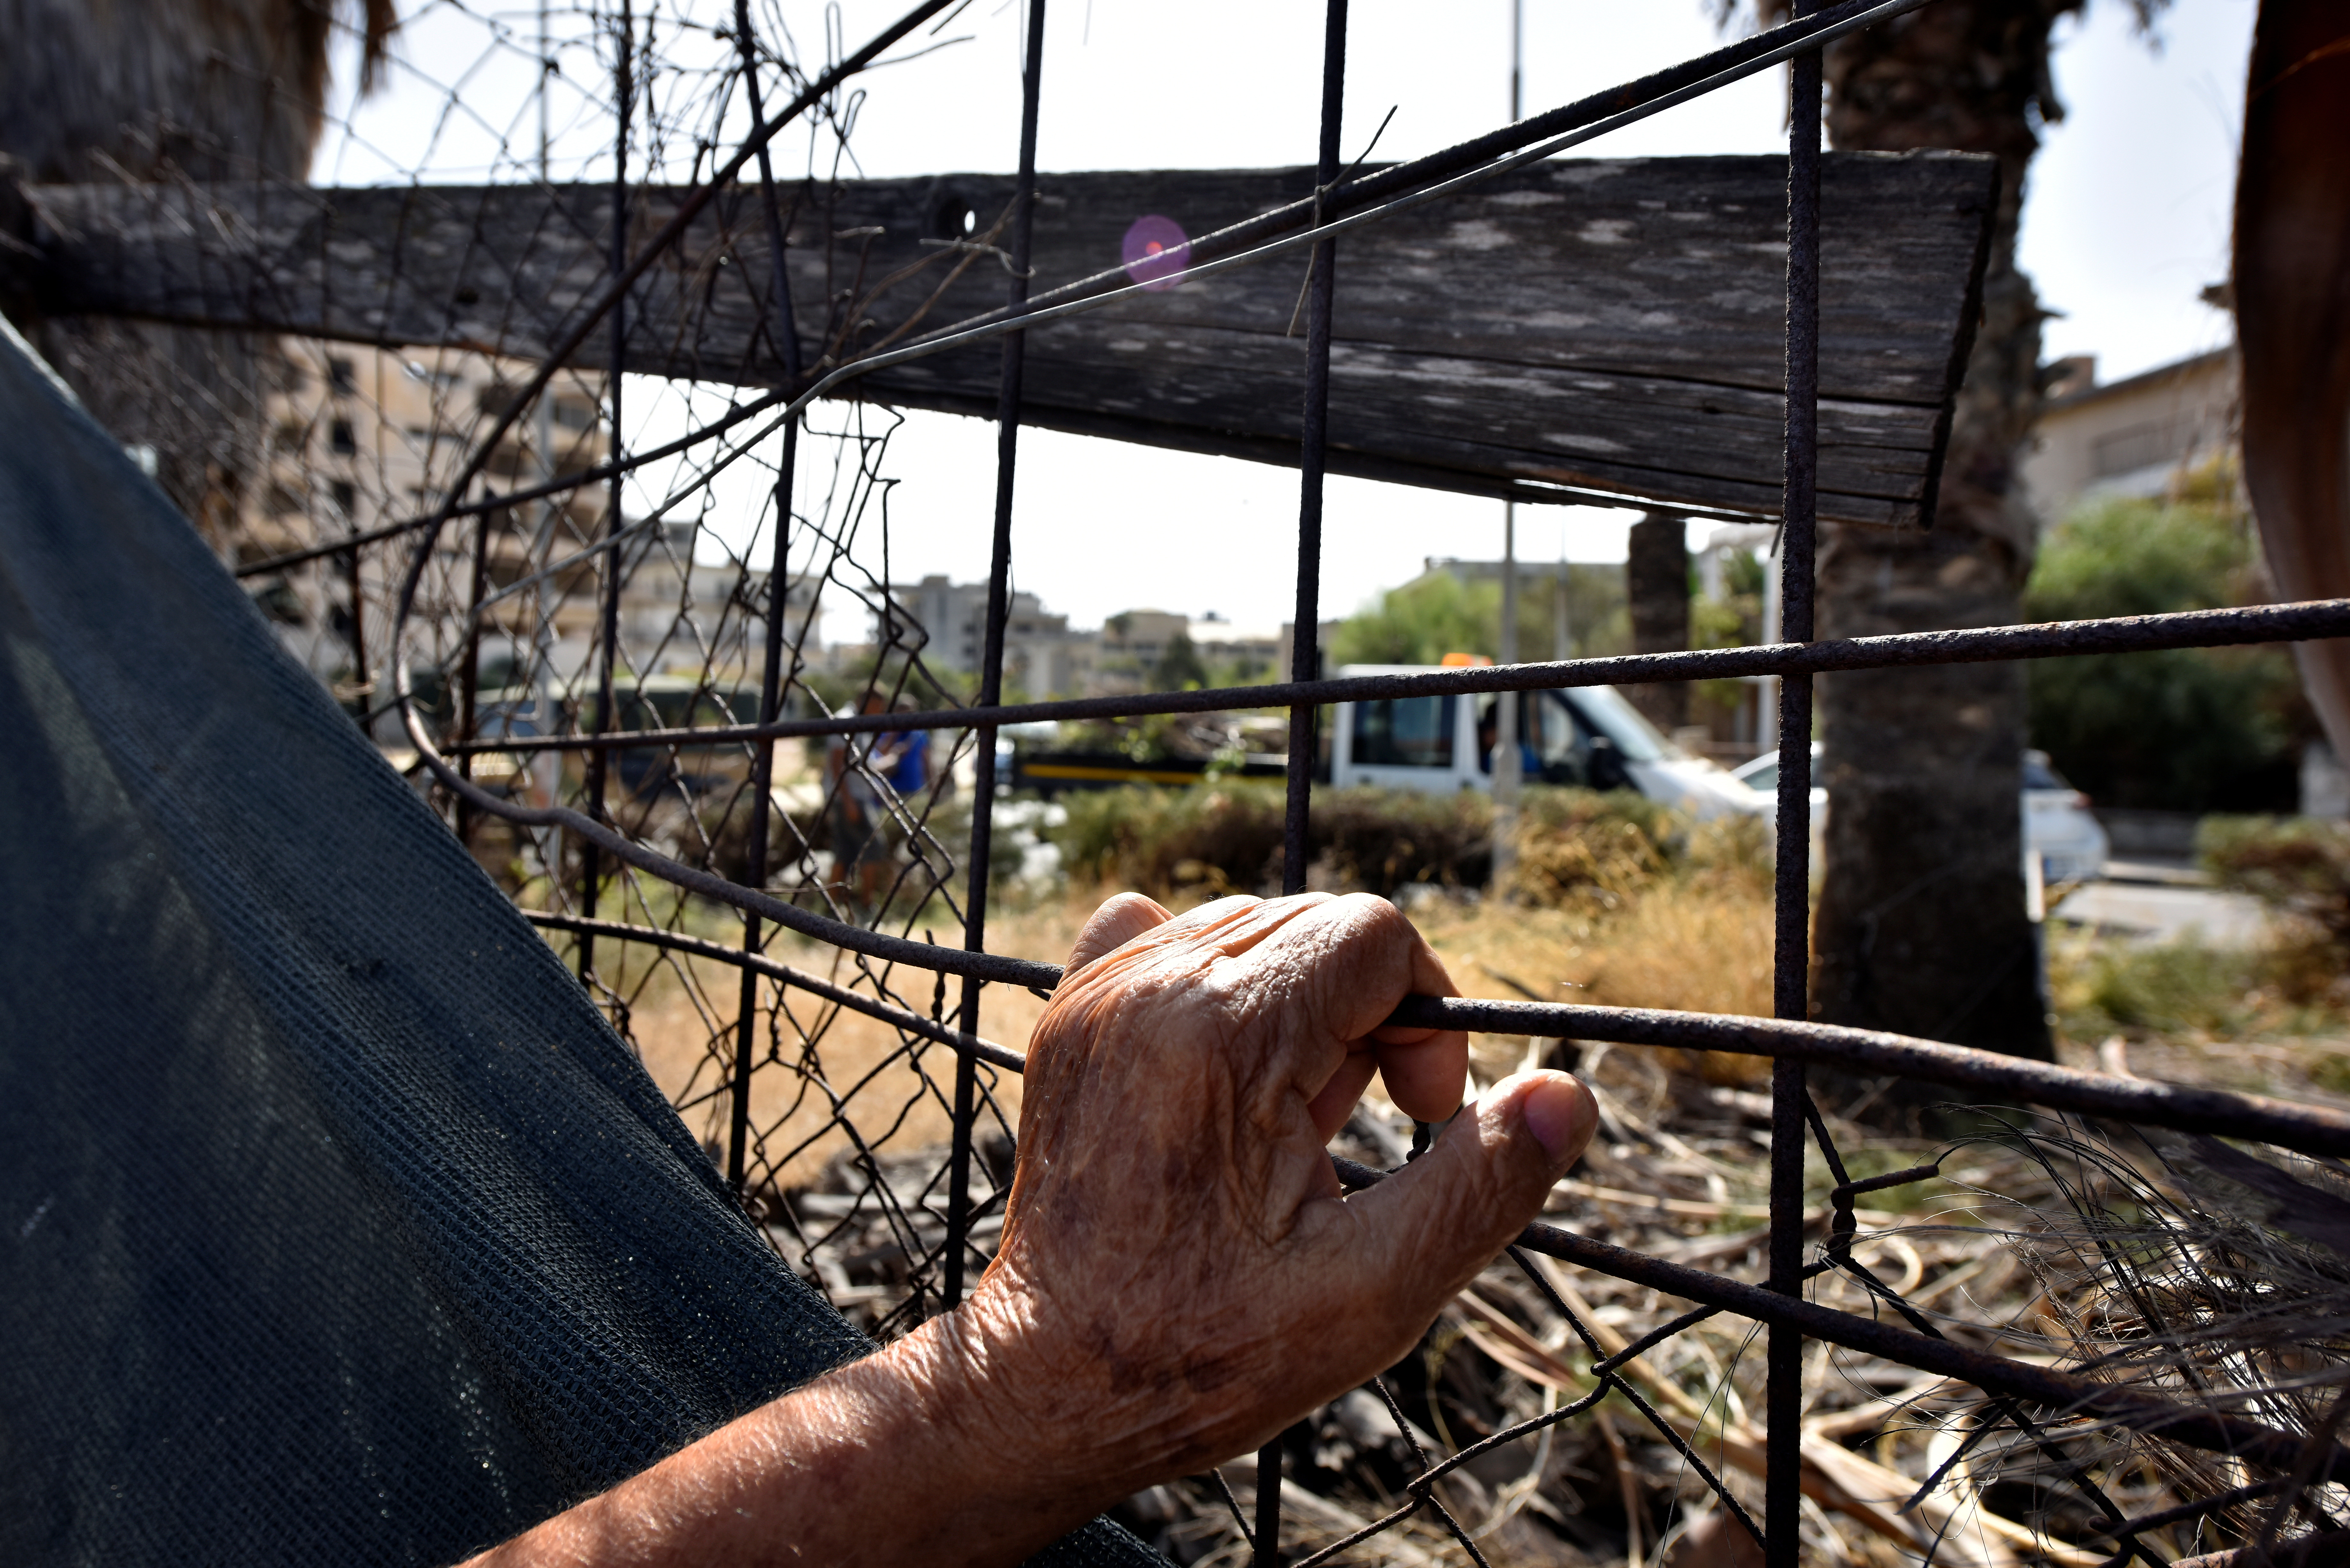 A man holds a fence in an area fenced off by the Turkish military since 1974 in the abandoned coastal area of Varosha, a suburb of the town of Famagusta in Turkish-controlled northern Cyprus, October 8, 2020. REUTERS/Harun Ucar/File Photo